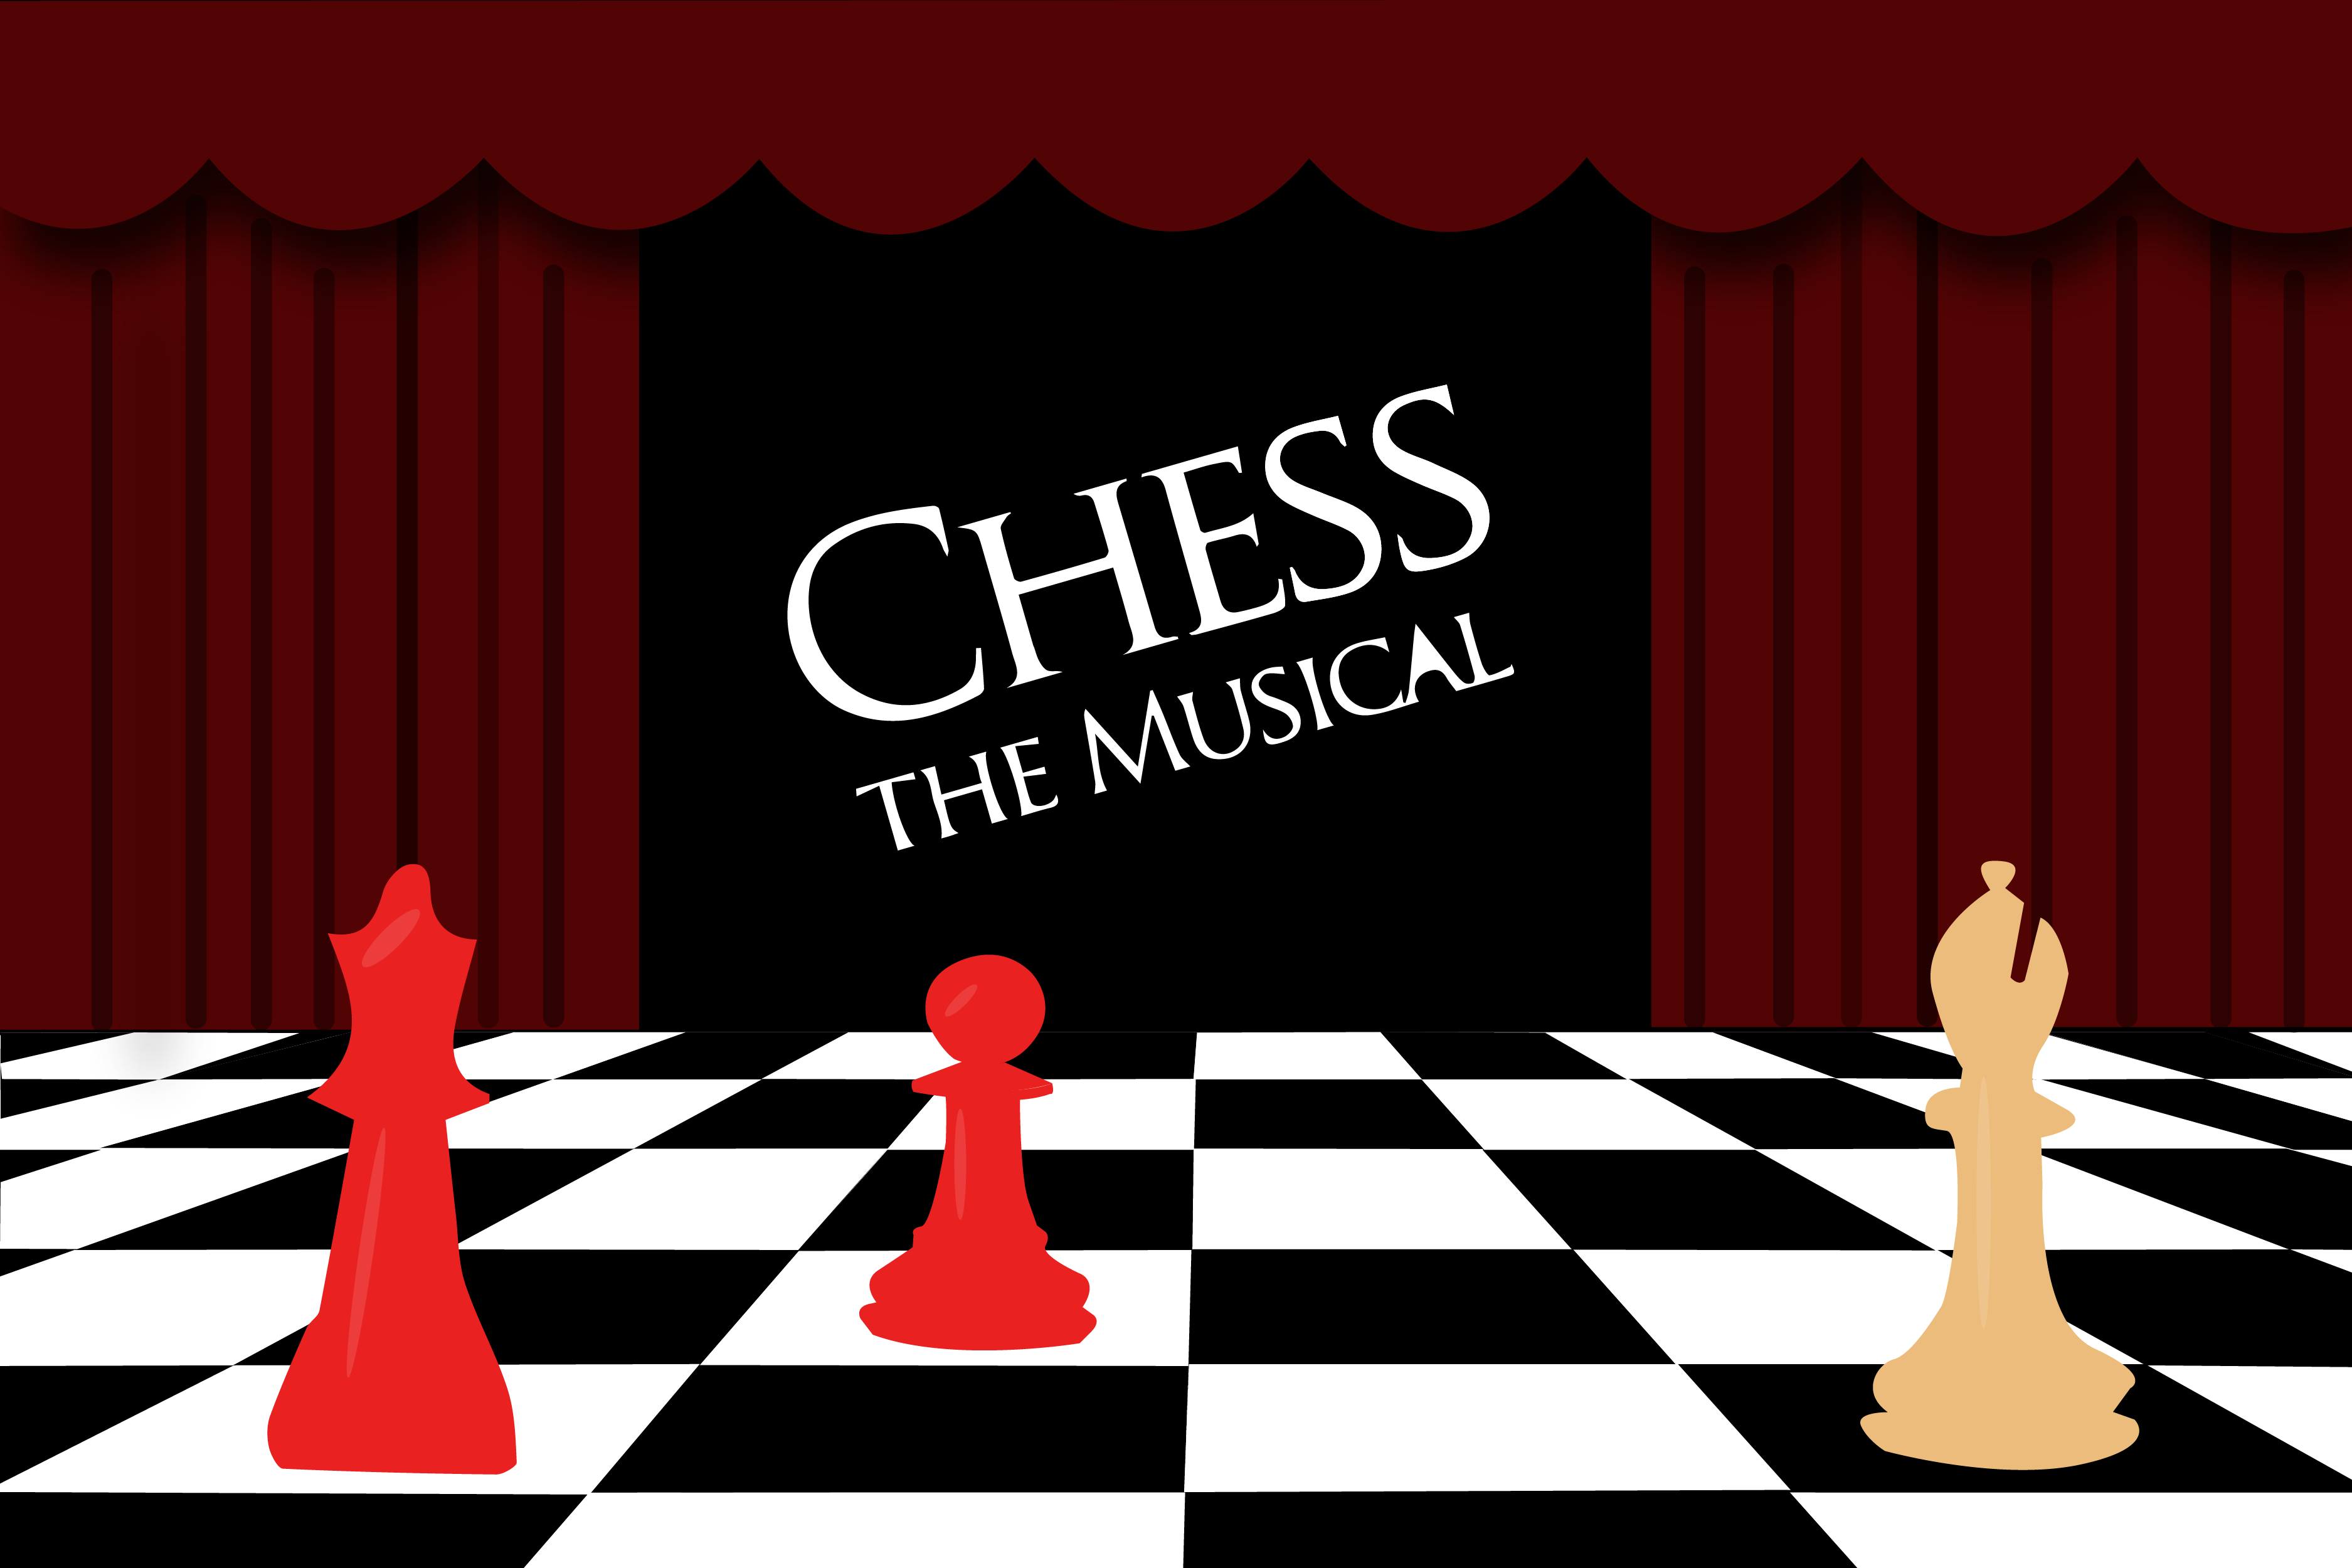 Preview: Chess, the Musical